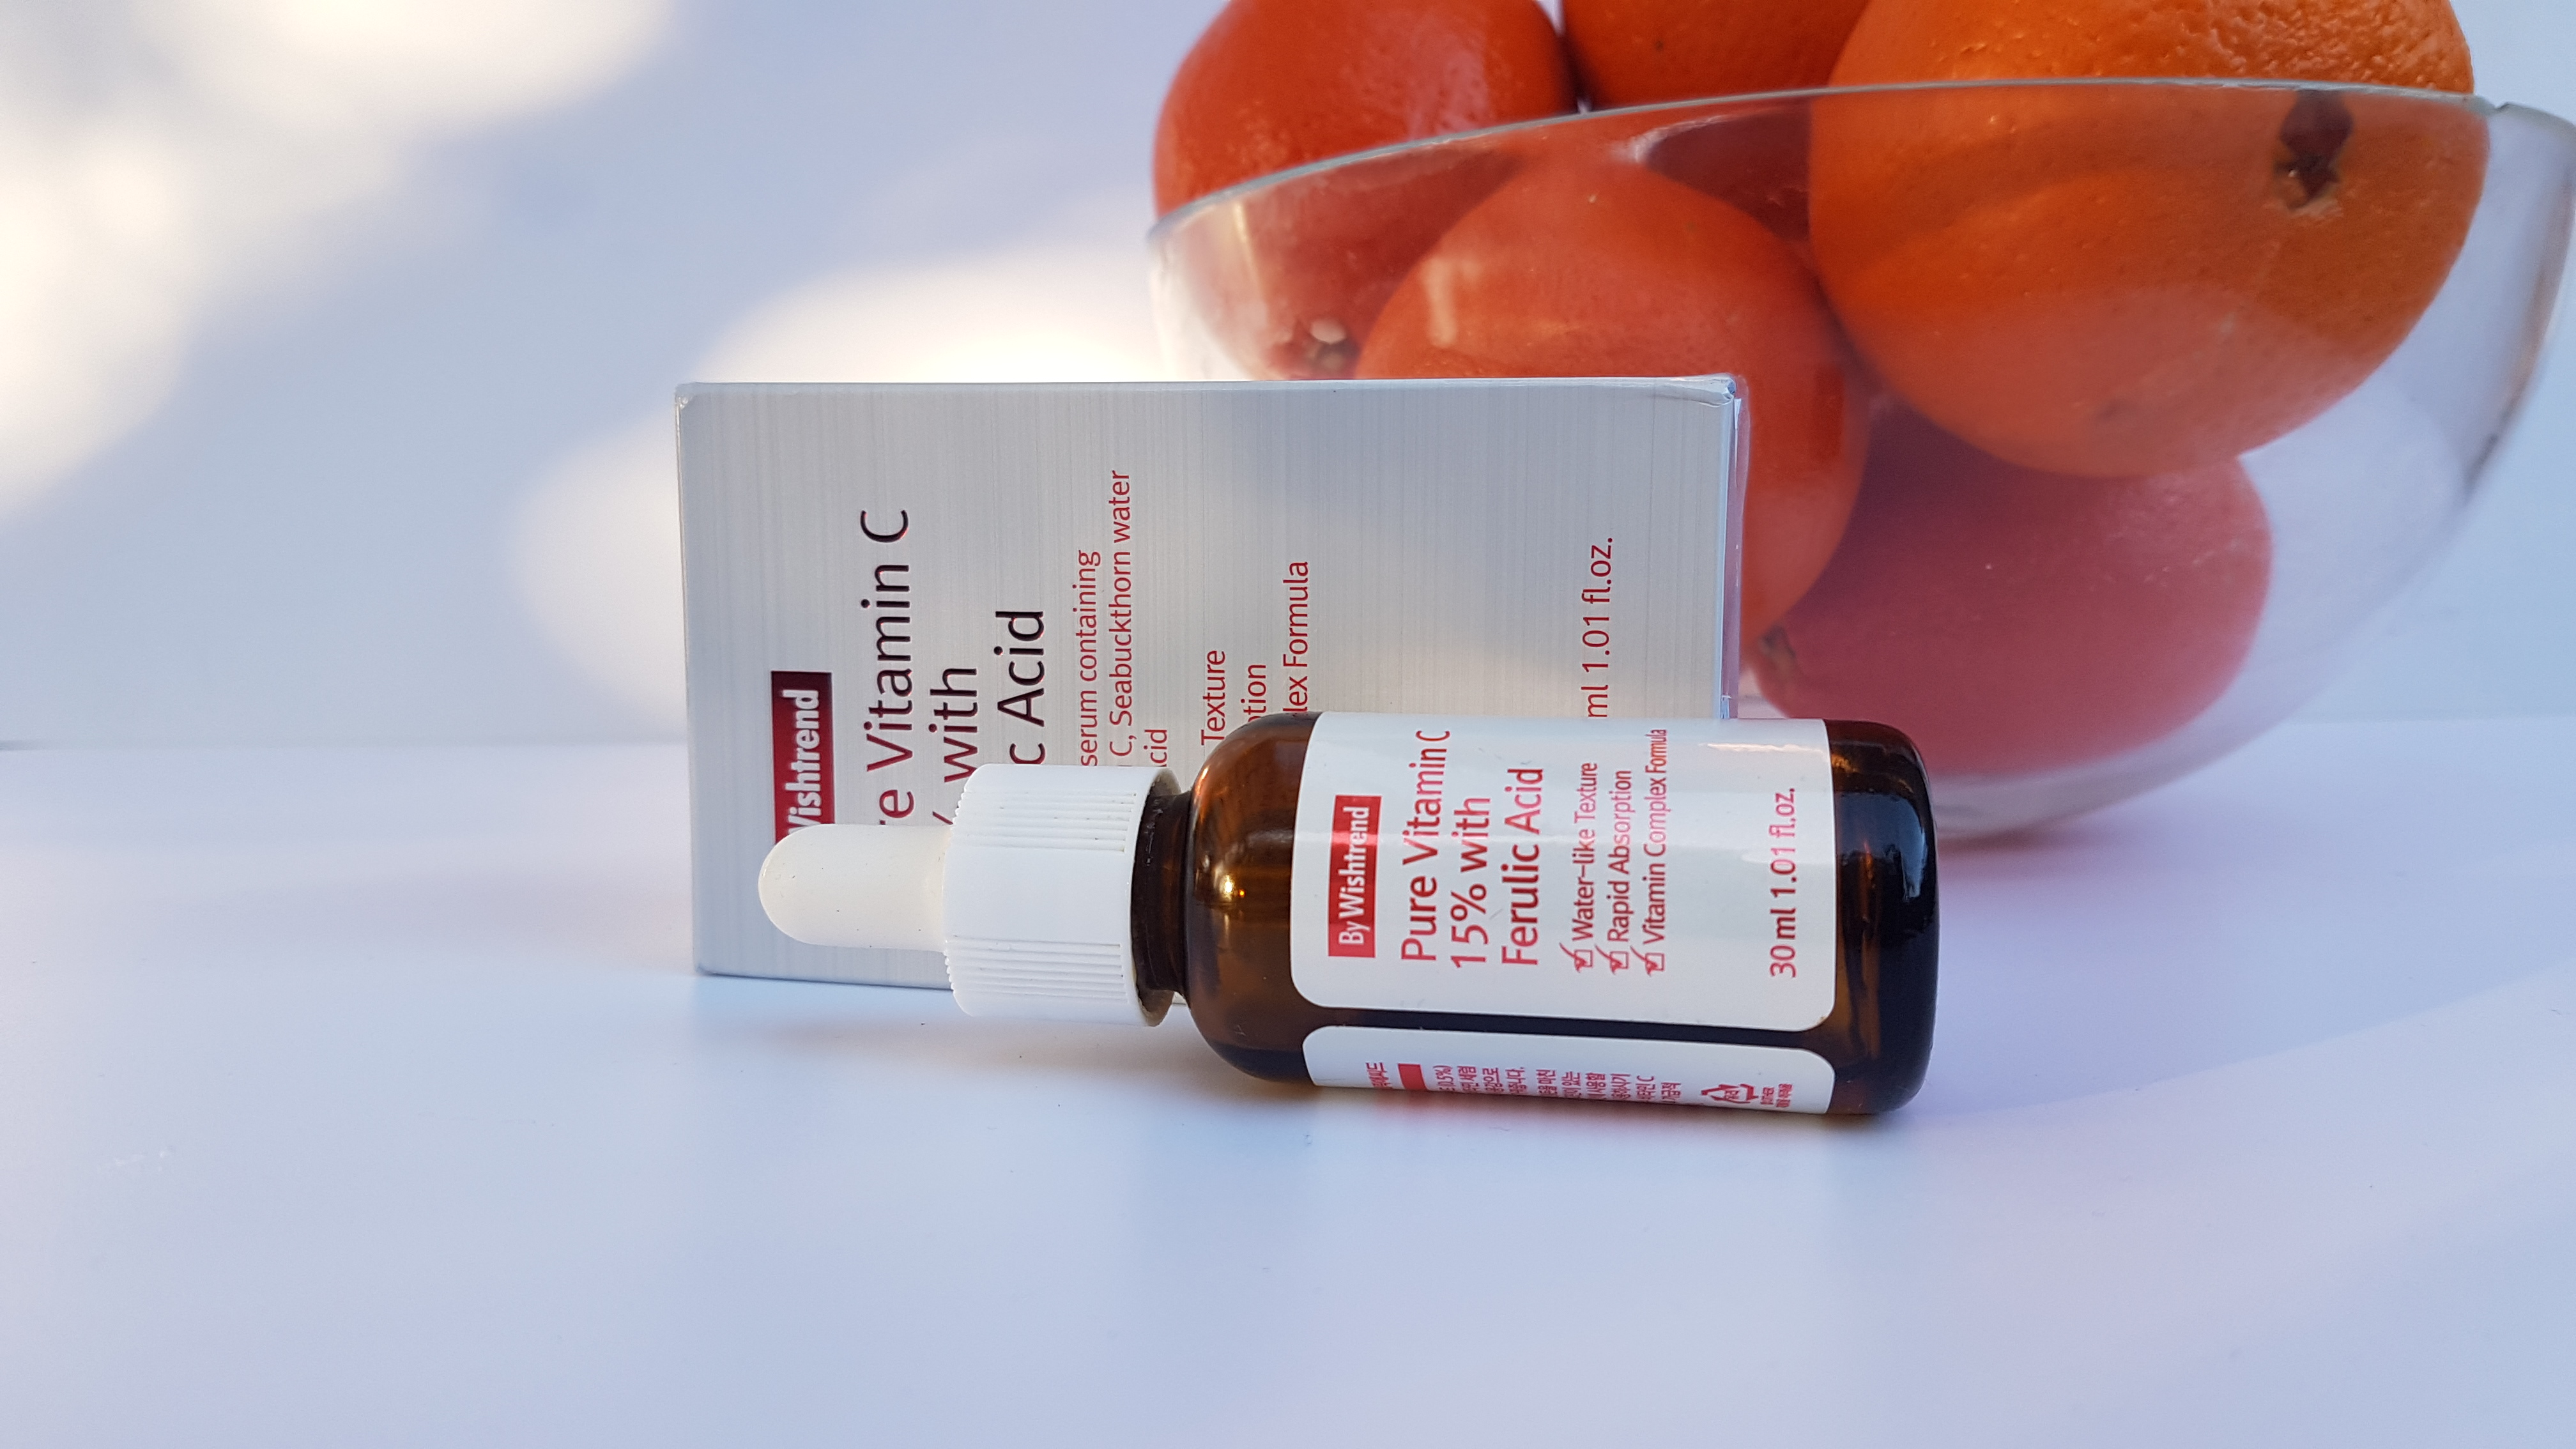 ByWishtrend Pure Vitamin C 15% with Ferulic Acid Ingredients